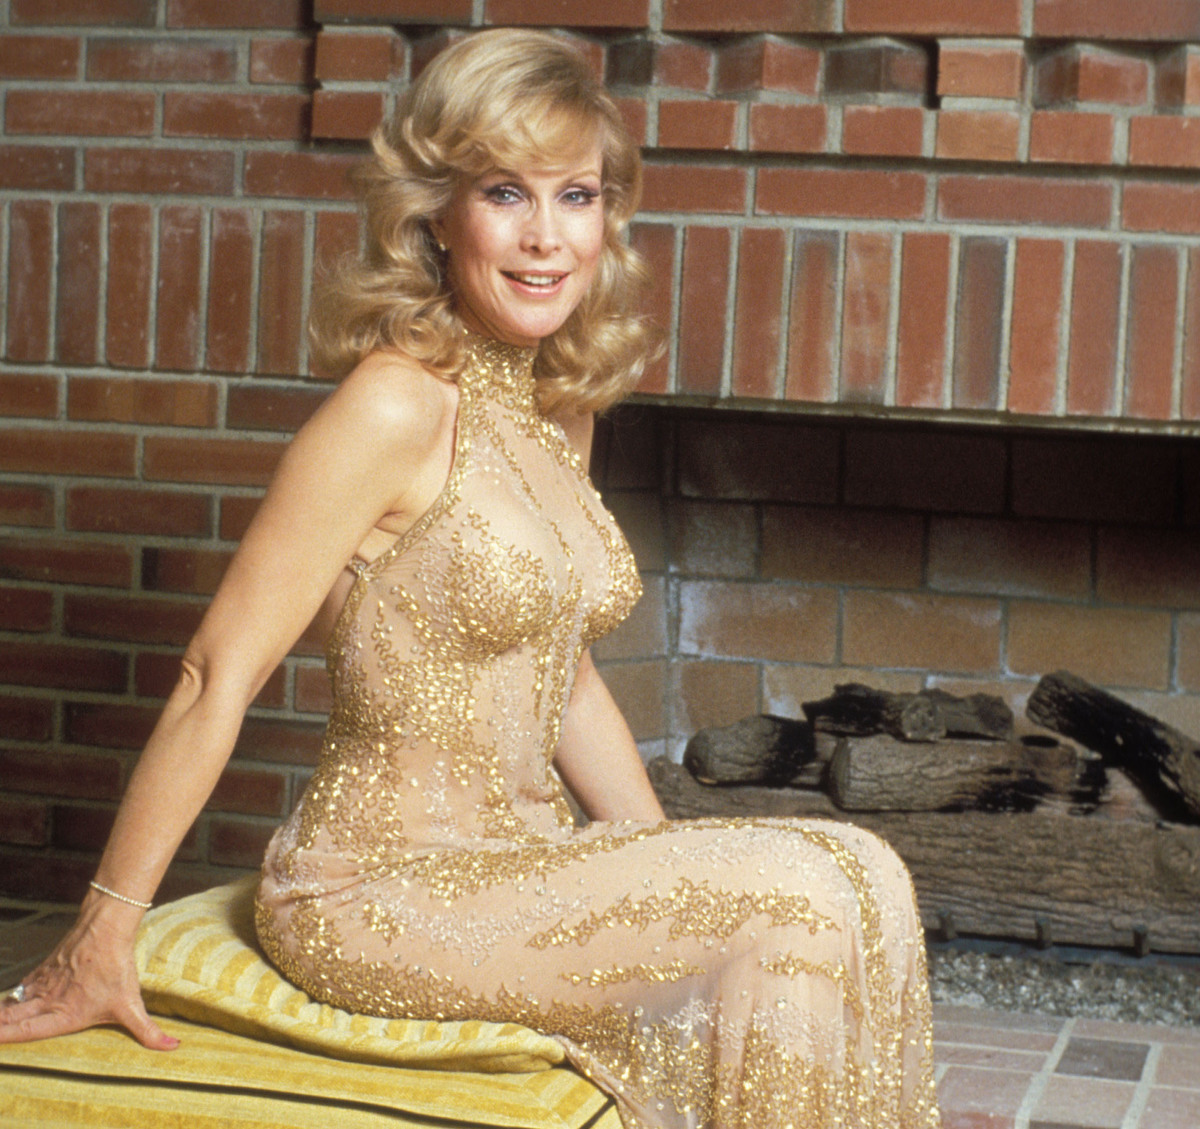 Barbara Eden sits in a golden dress in front of a fireplace.